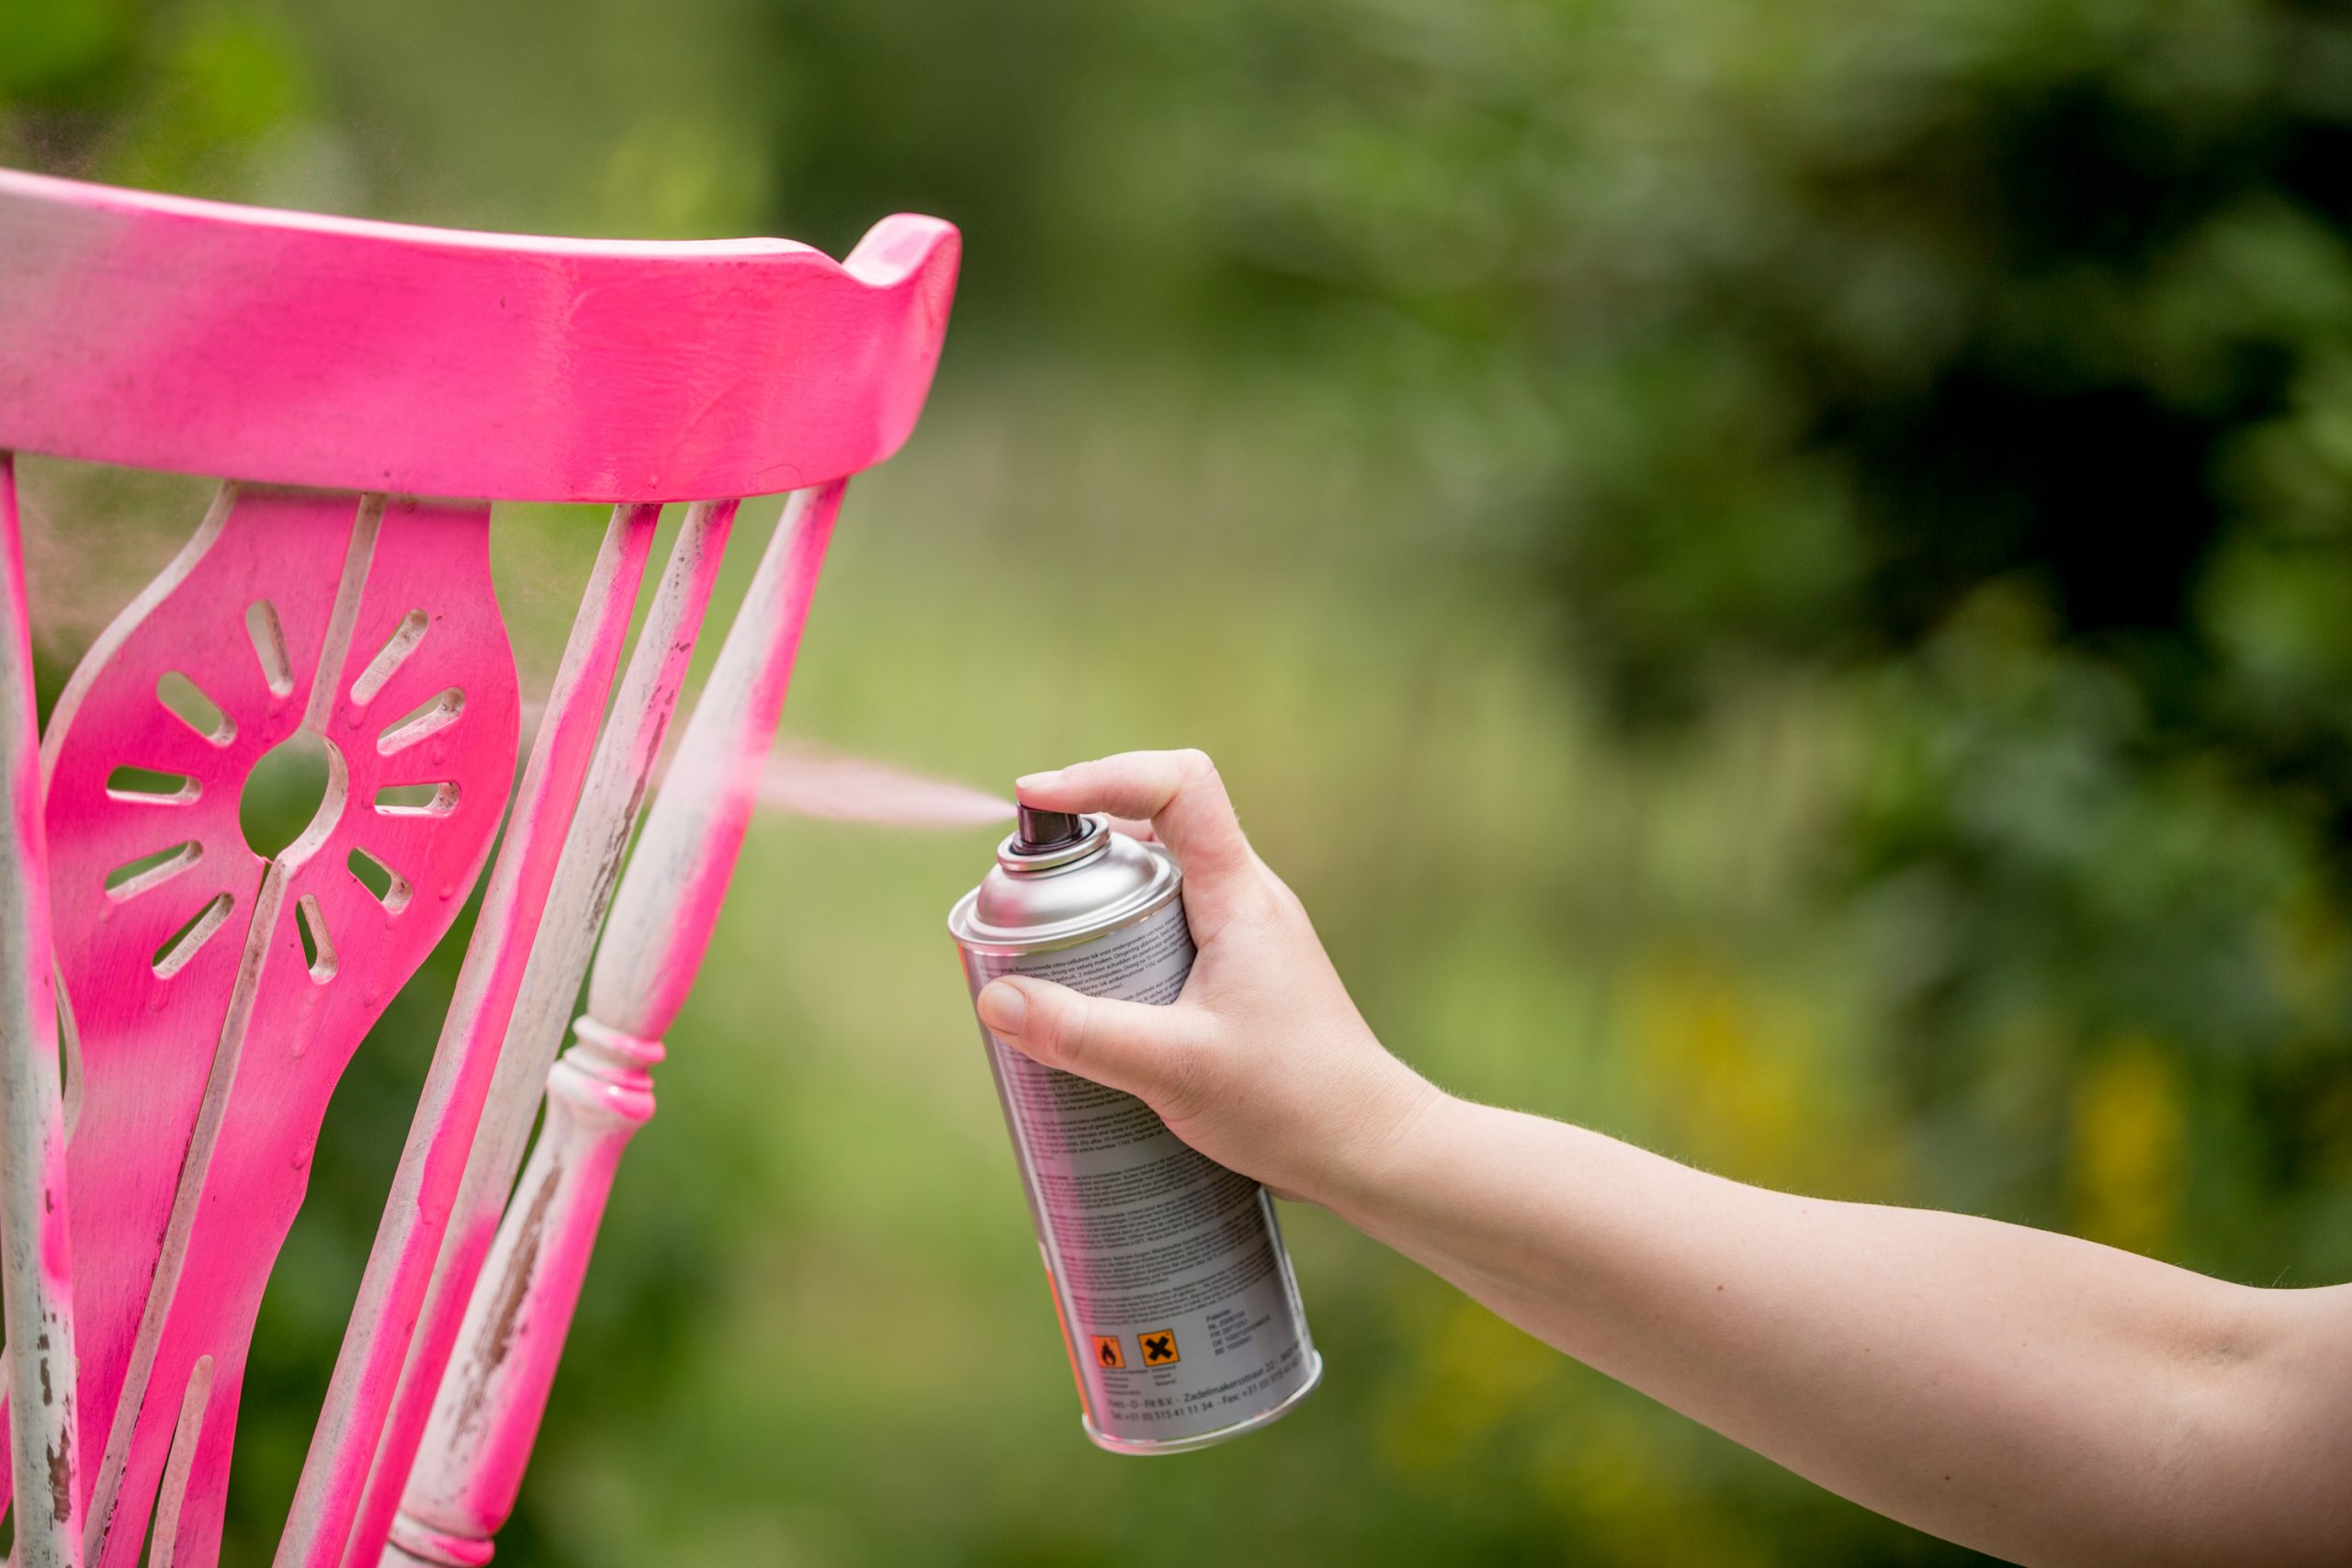 Tips about how to spray paint wood furniture! This example shows a wood chair being painted.